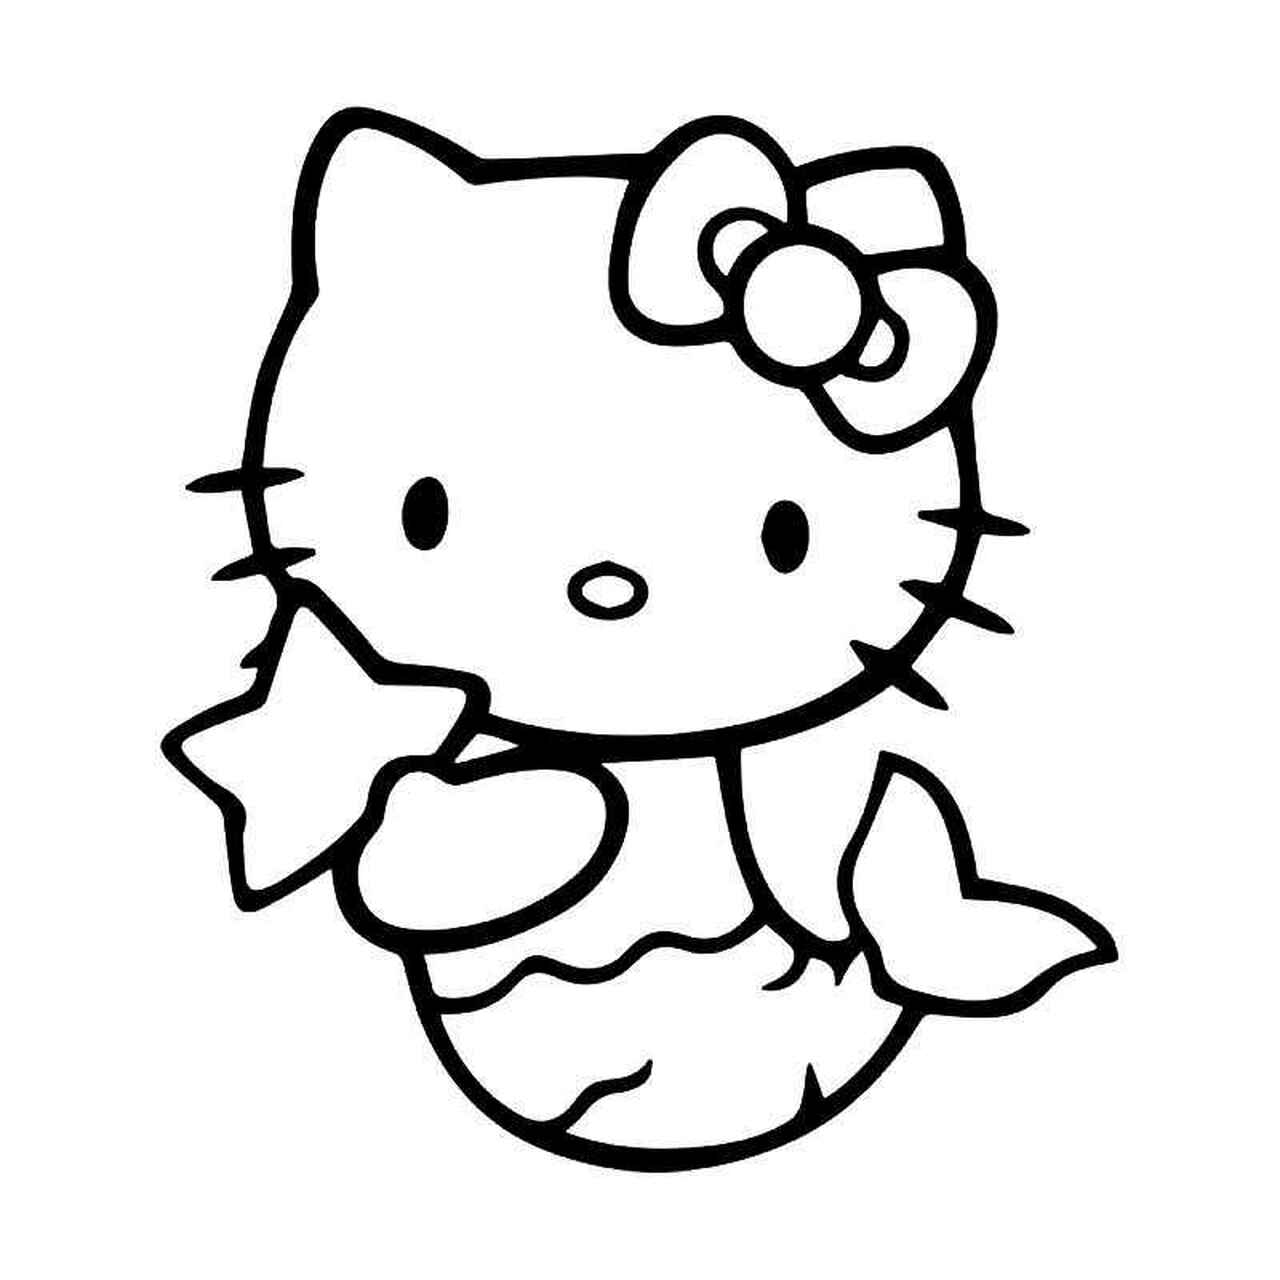 mermaid kitten coloring pages hello kitty mermaid vinyl sticker kitten coloring mermaid pages